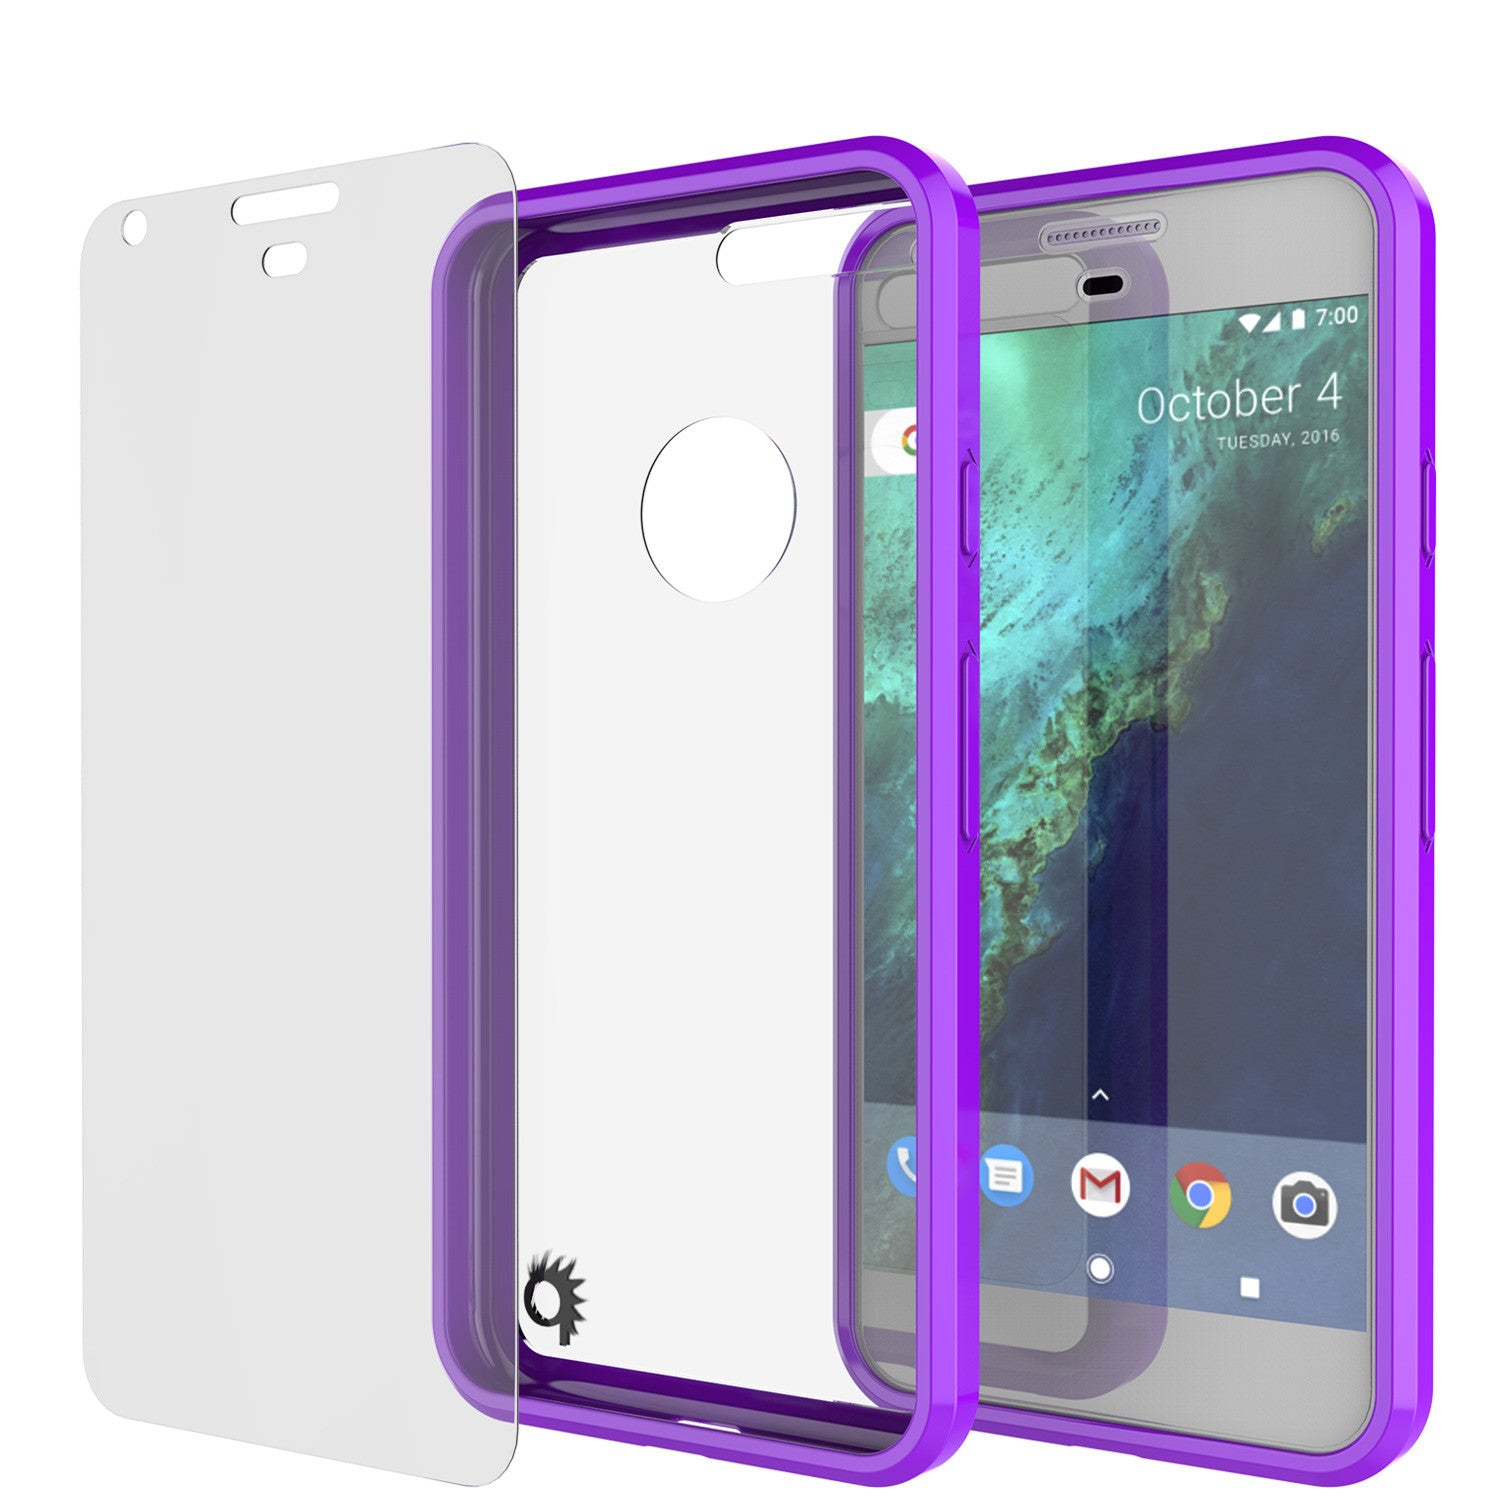 Google Pixel XL Case Punkcase® LUCID 2.0 Purple Series w/ PUNK SHIELD Glass Screen Protector | Ultra Fit